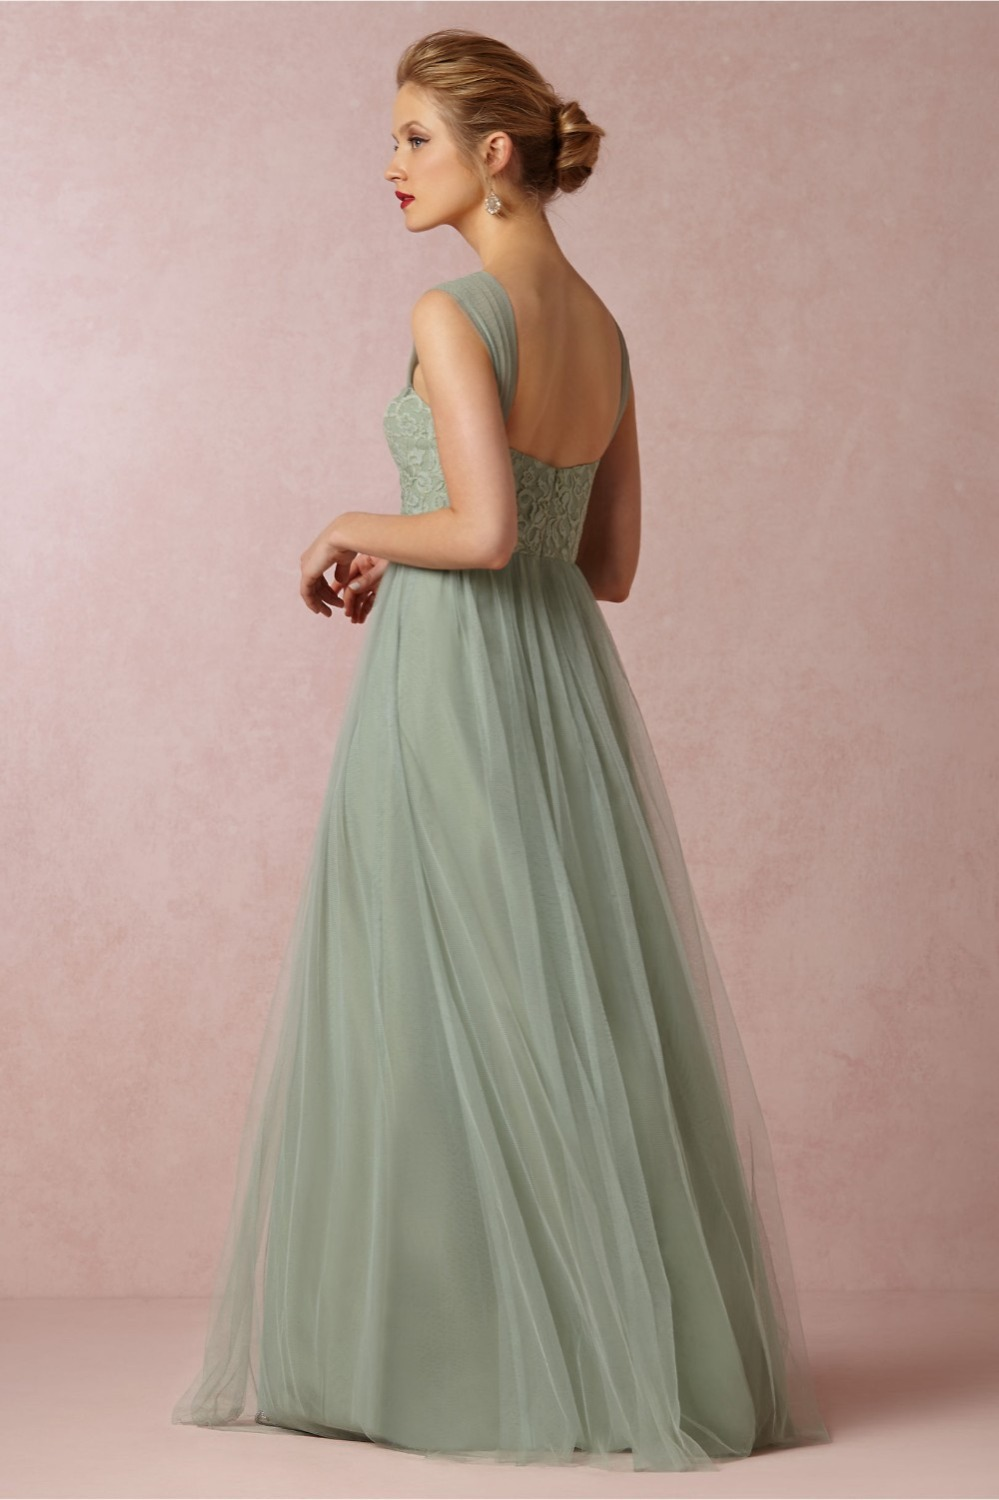 Aliexpress buy 2017 mint green cheap long chiffon bridesmaid aliexpress buy 2017 mint green cheap long chiffon bridesmaid dresses sweetheart tulle bridesmaid gowns 2017 plus size wedding party dress from ombrellifo Images